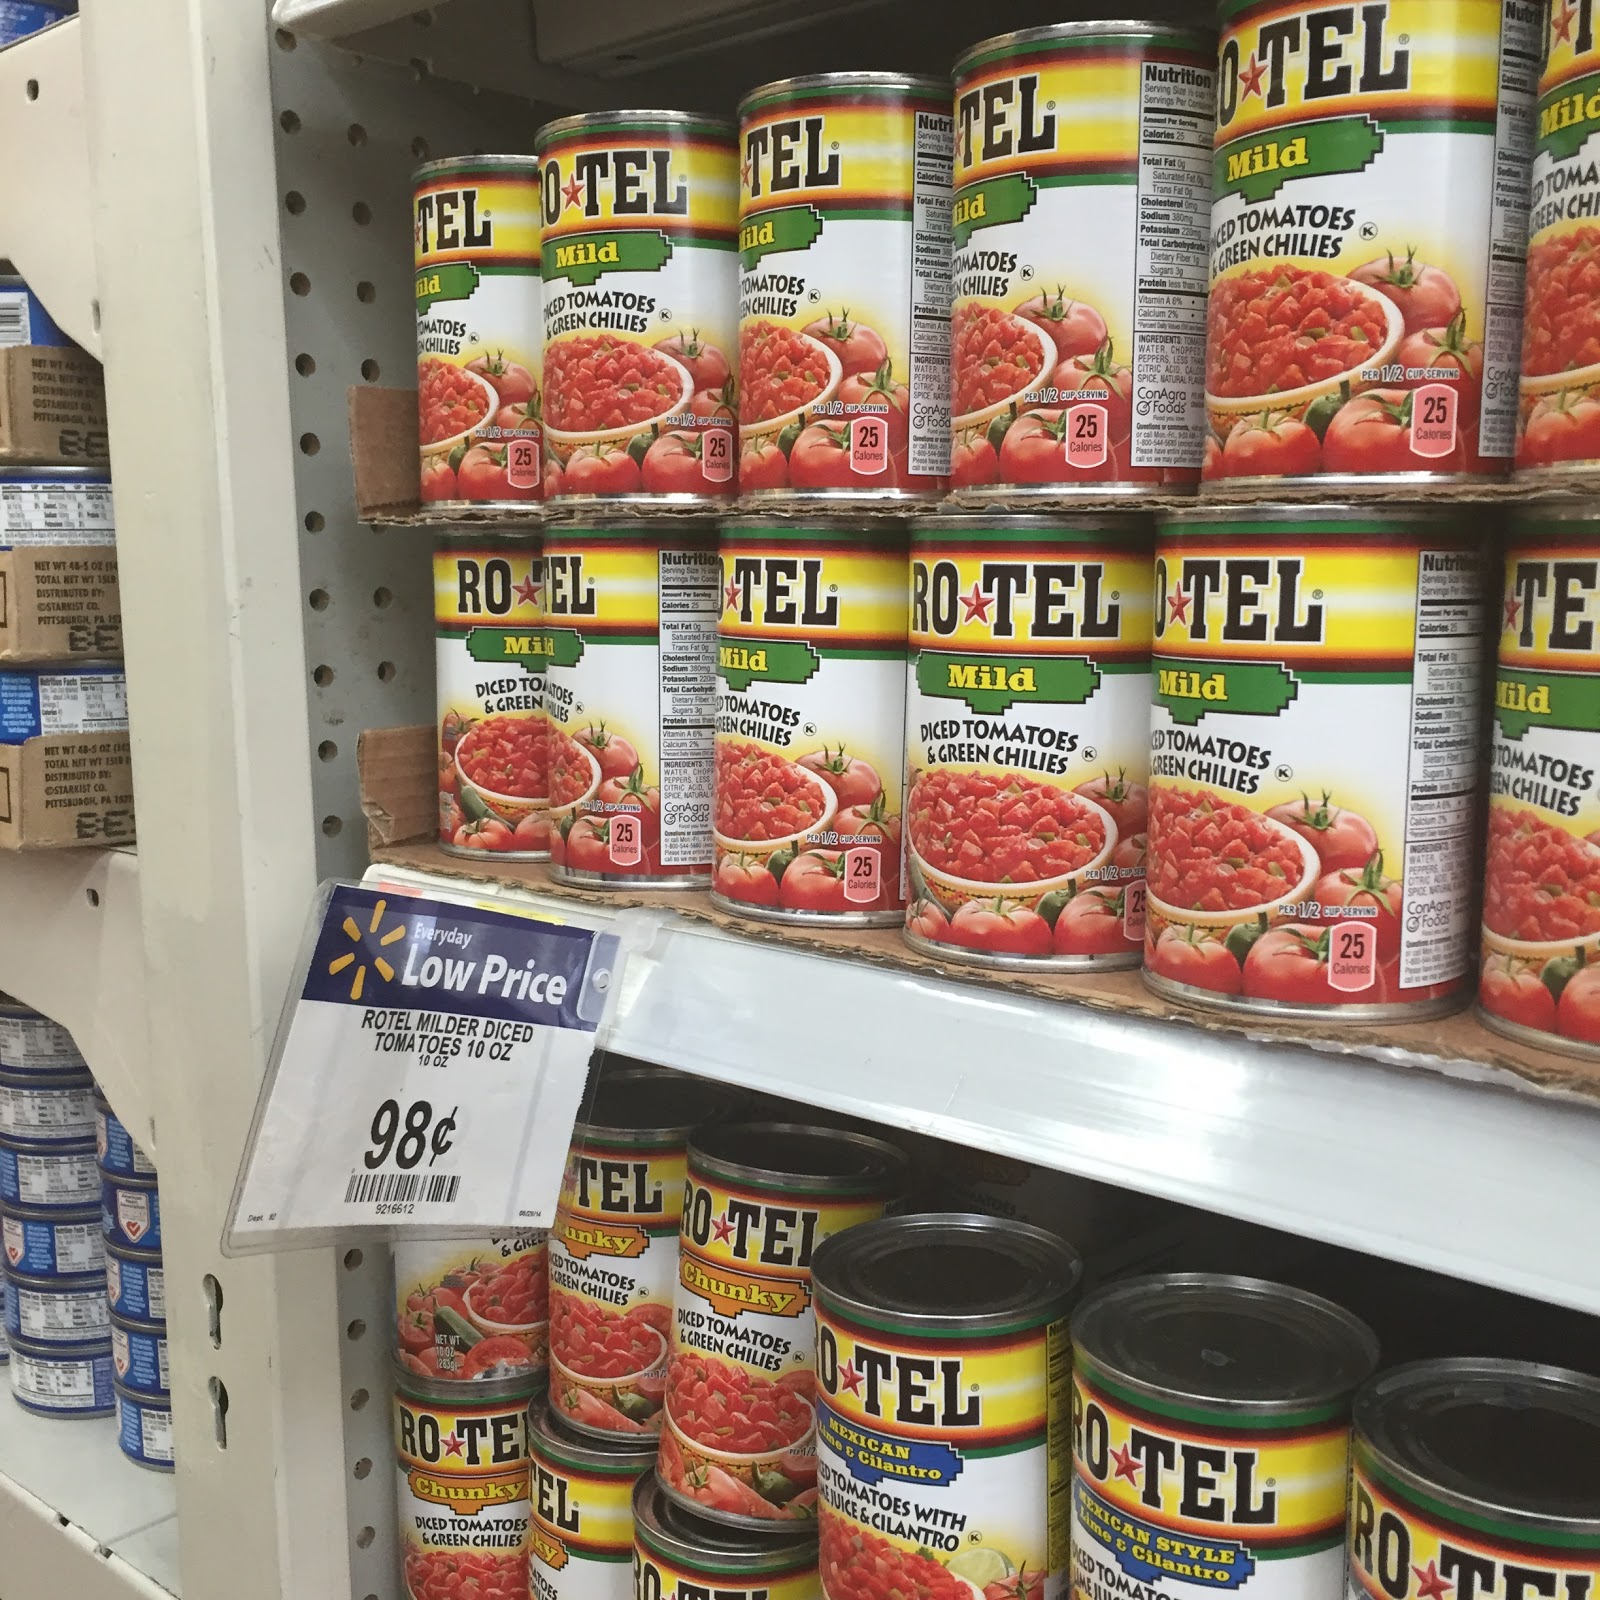 Check Out this Walmart RO*TEL Coupon and #JustAddRotel